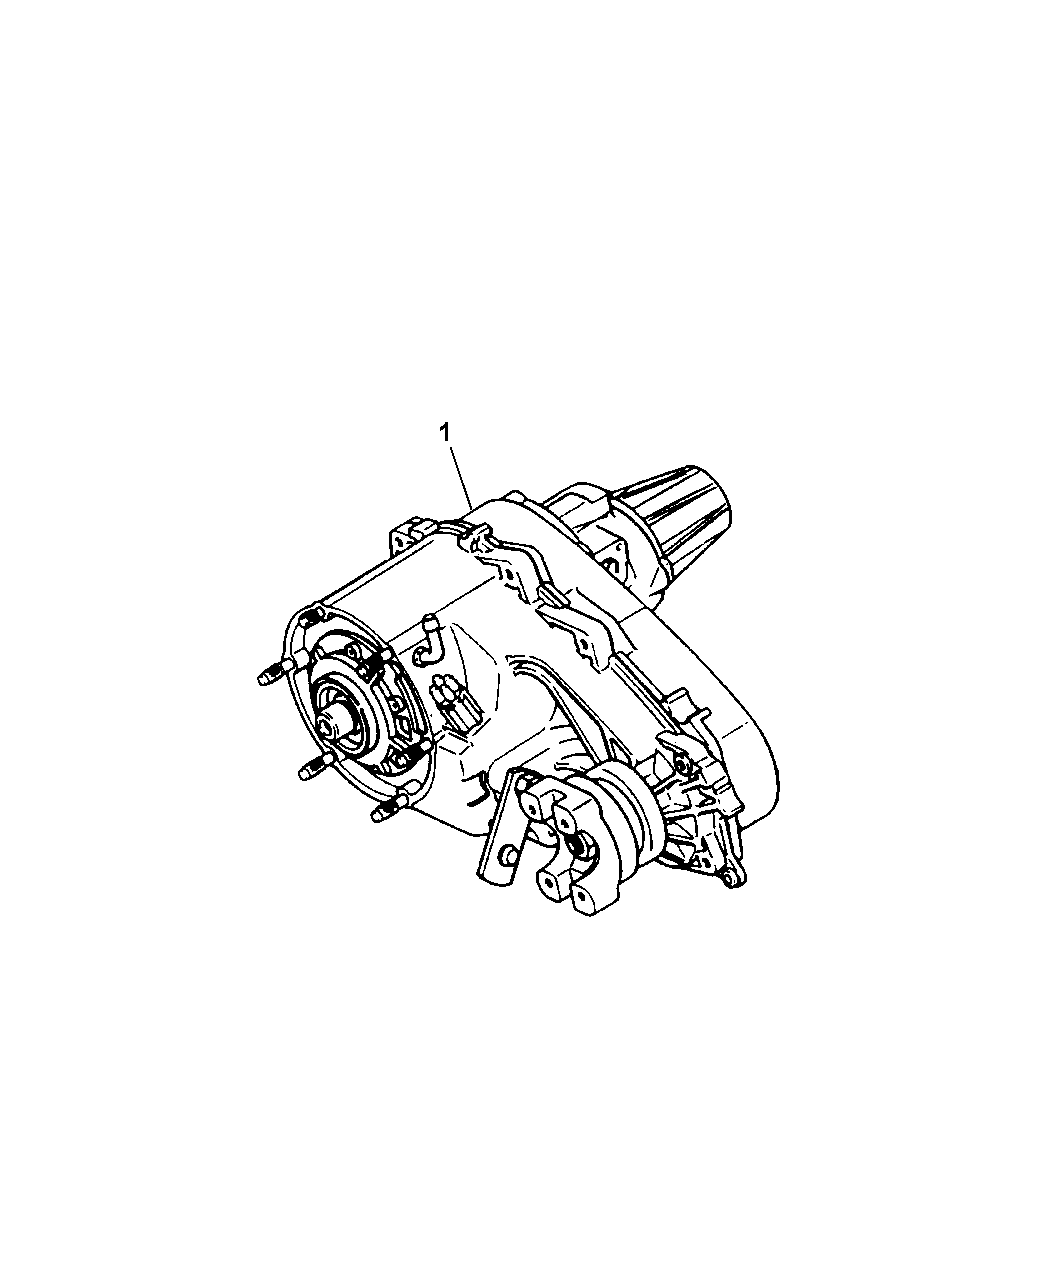 2003 Jeep Grand Cherokee Transfer Case - Diagram 1